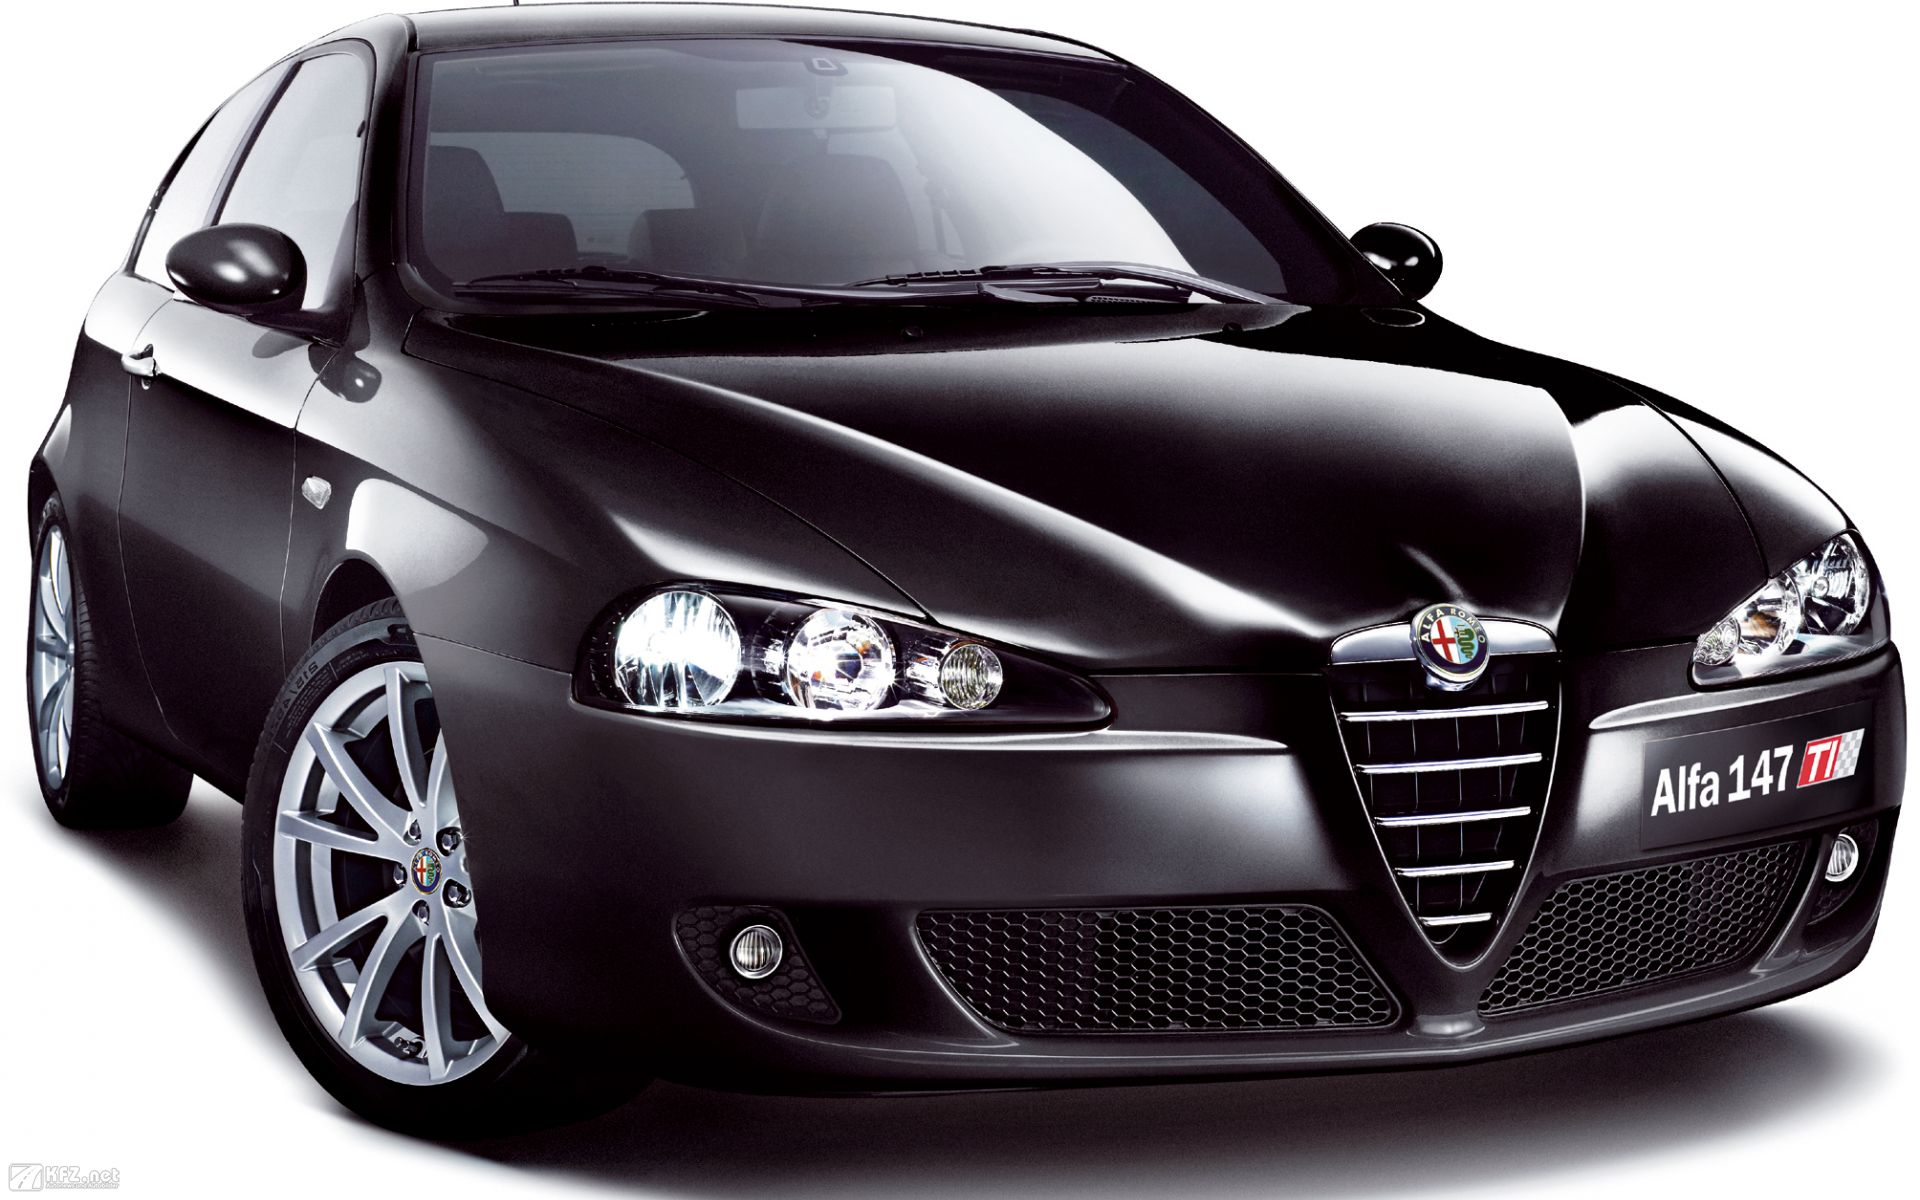 alfa romeo 147 history photos on better parts ltd. Black Bedroom Furniture Sets. Home Design Ideas